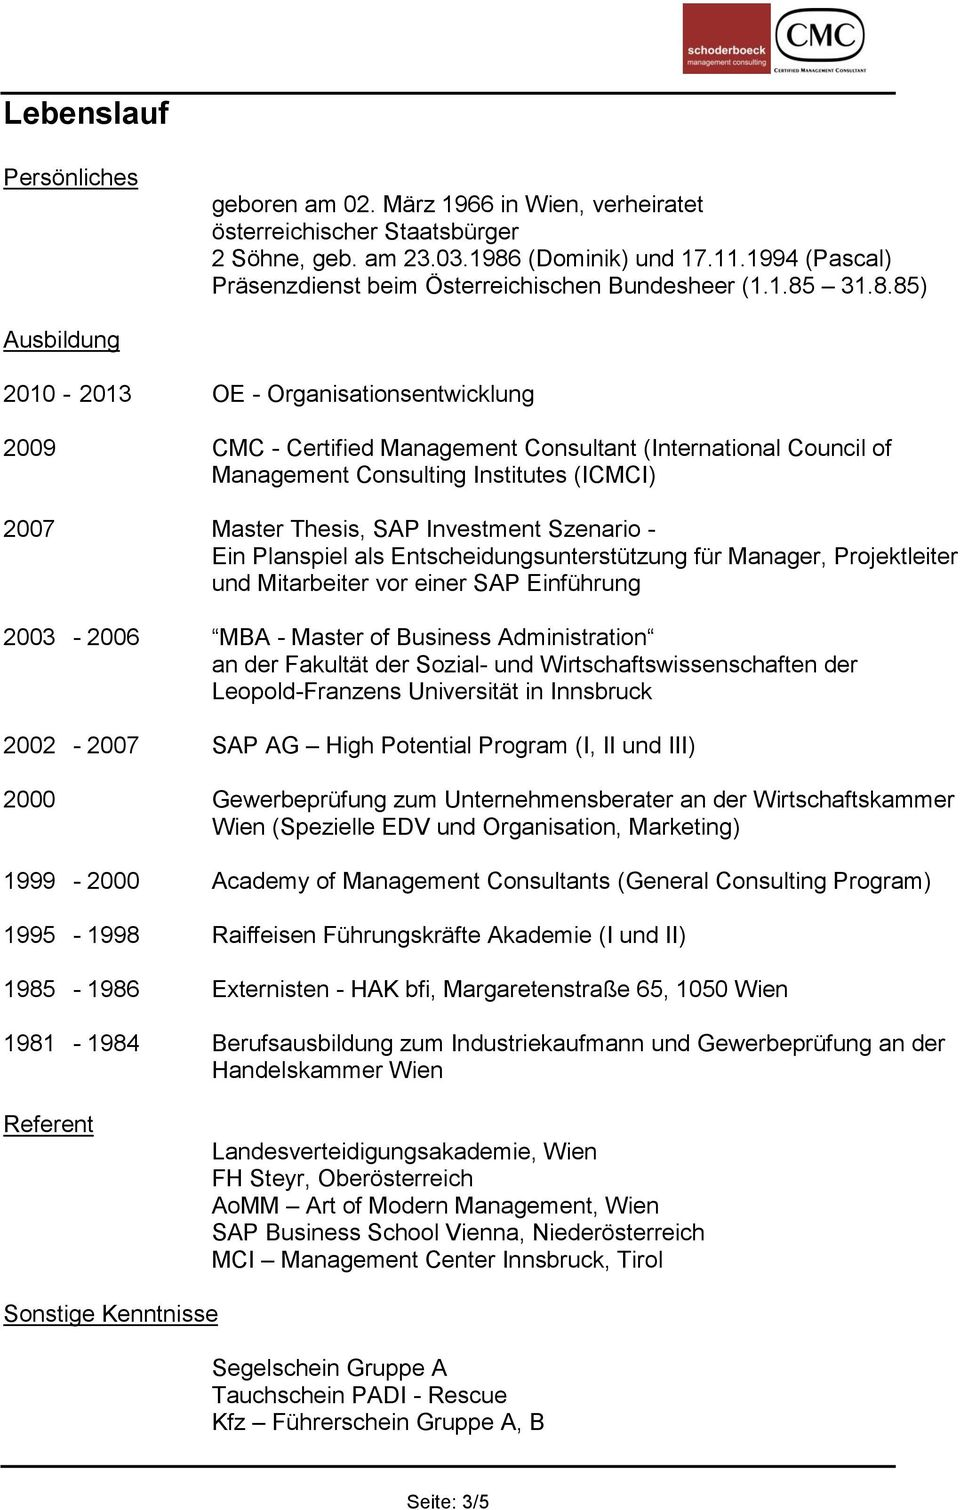 31.8.85) Ausbildung 2010-2013 OE - Organisationsentwicklung 2009 CMC - Certified Management Consultant (International Council of Management Consulting Institutes (ICMCI) 2007 Master Thesis, SAP